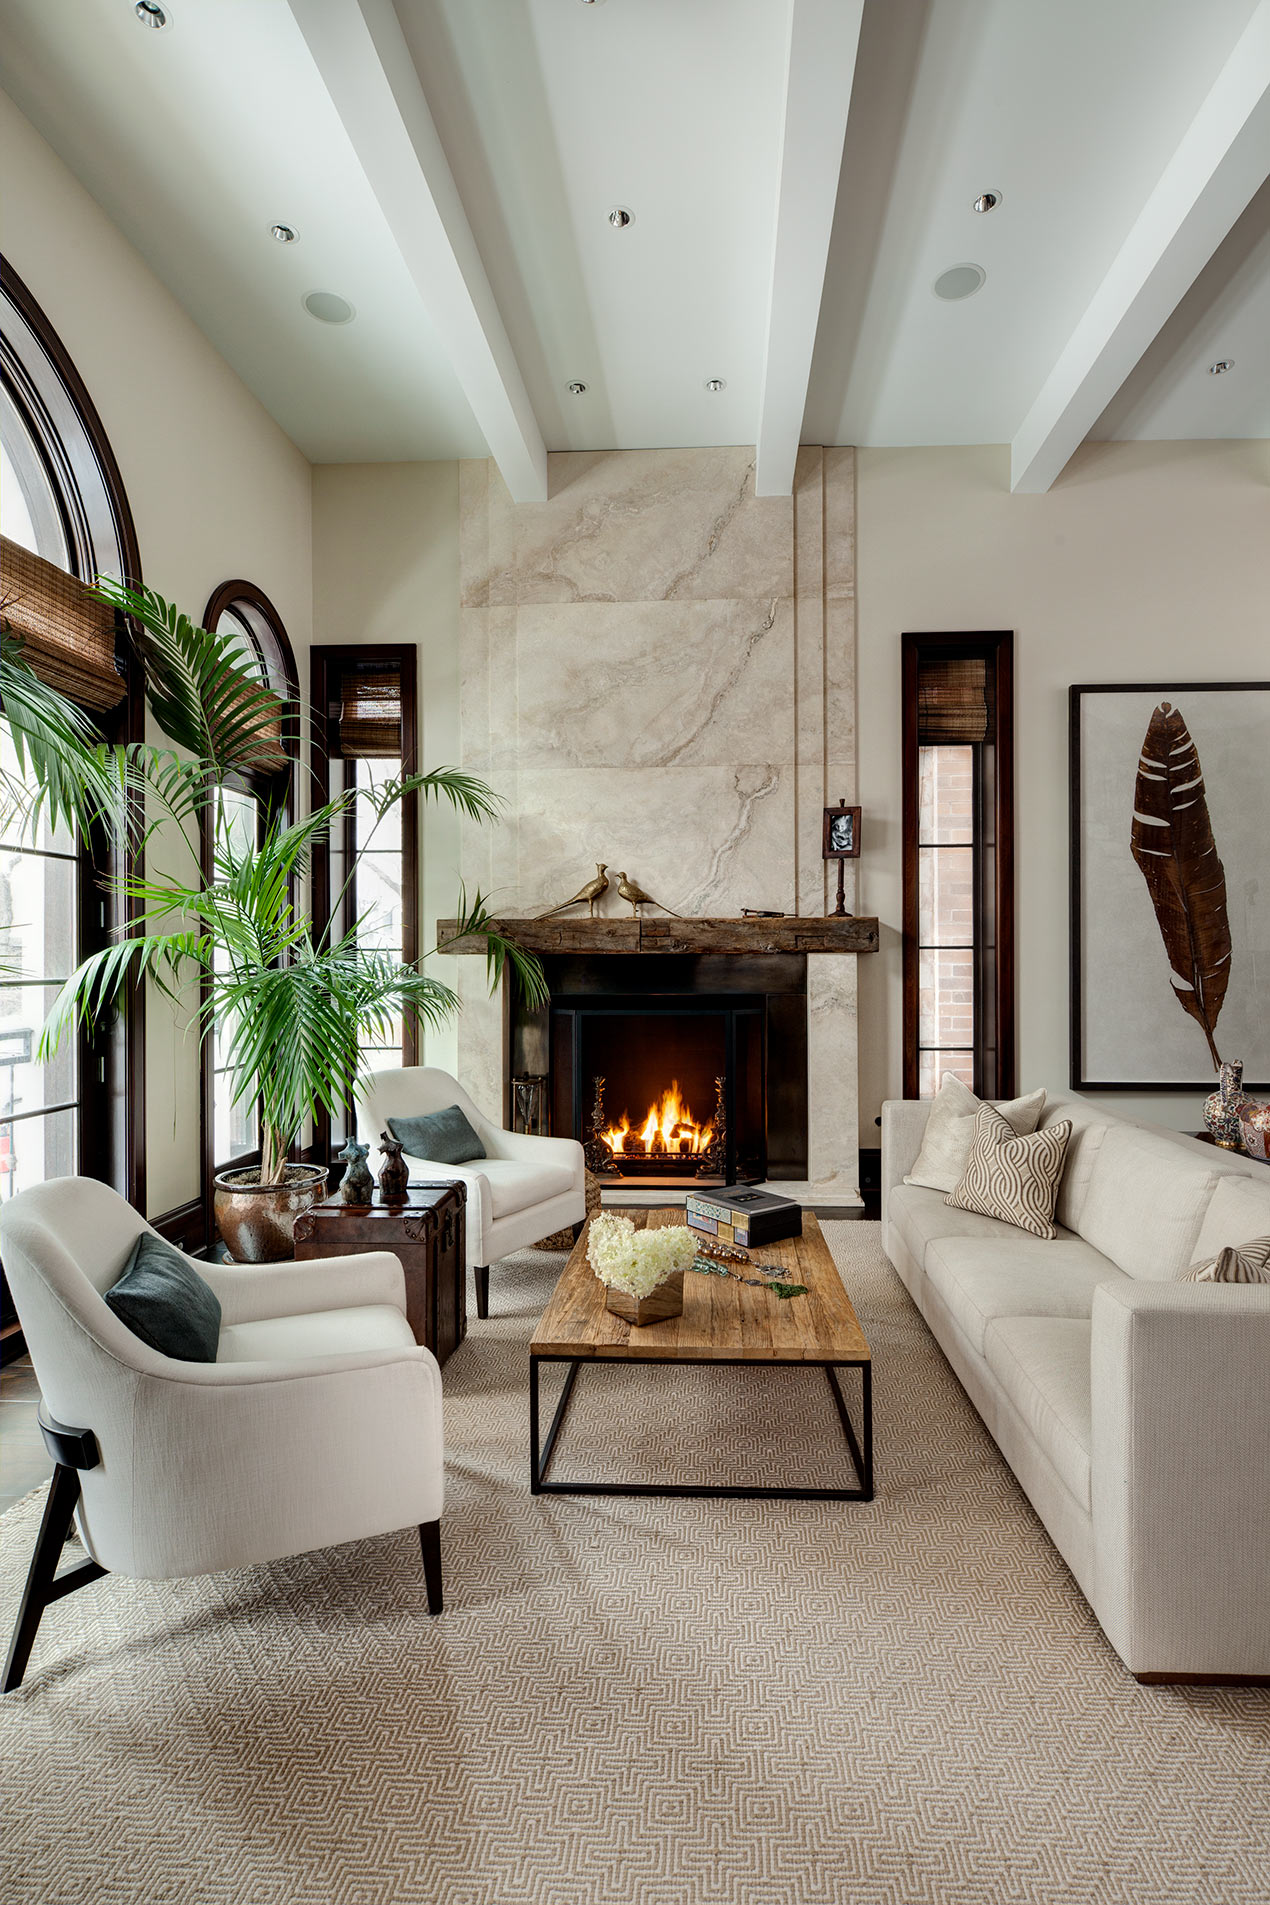 Cari Giannoulias Design Chicago based Interior Designer